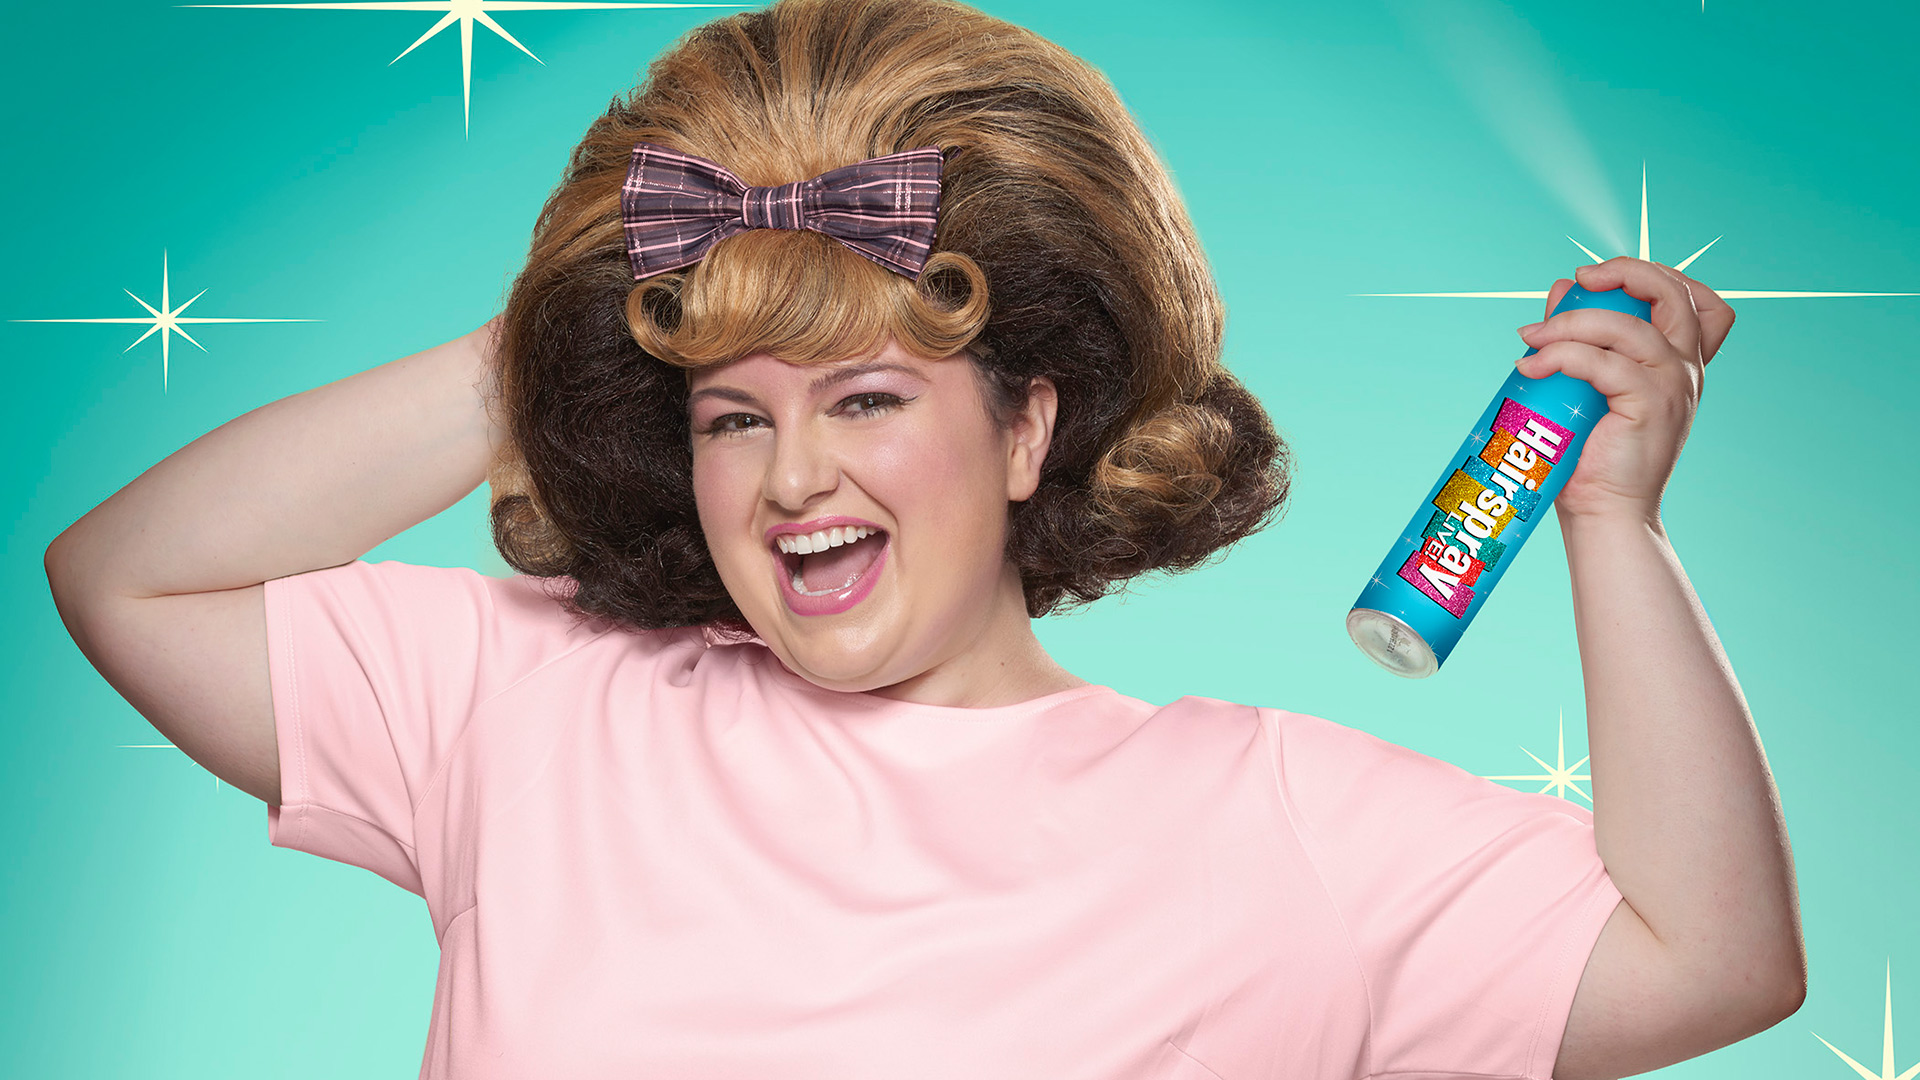 http://www.nbc.com/sites/nbcunbc/files/files/images/2016/6/07/160607_3047806_Look_Who_s_Playing_Tracy_Turnblad_in_Hairspr.jpg